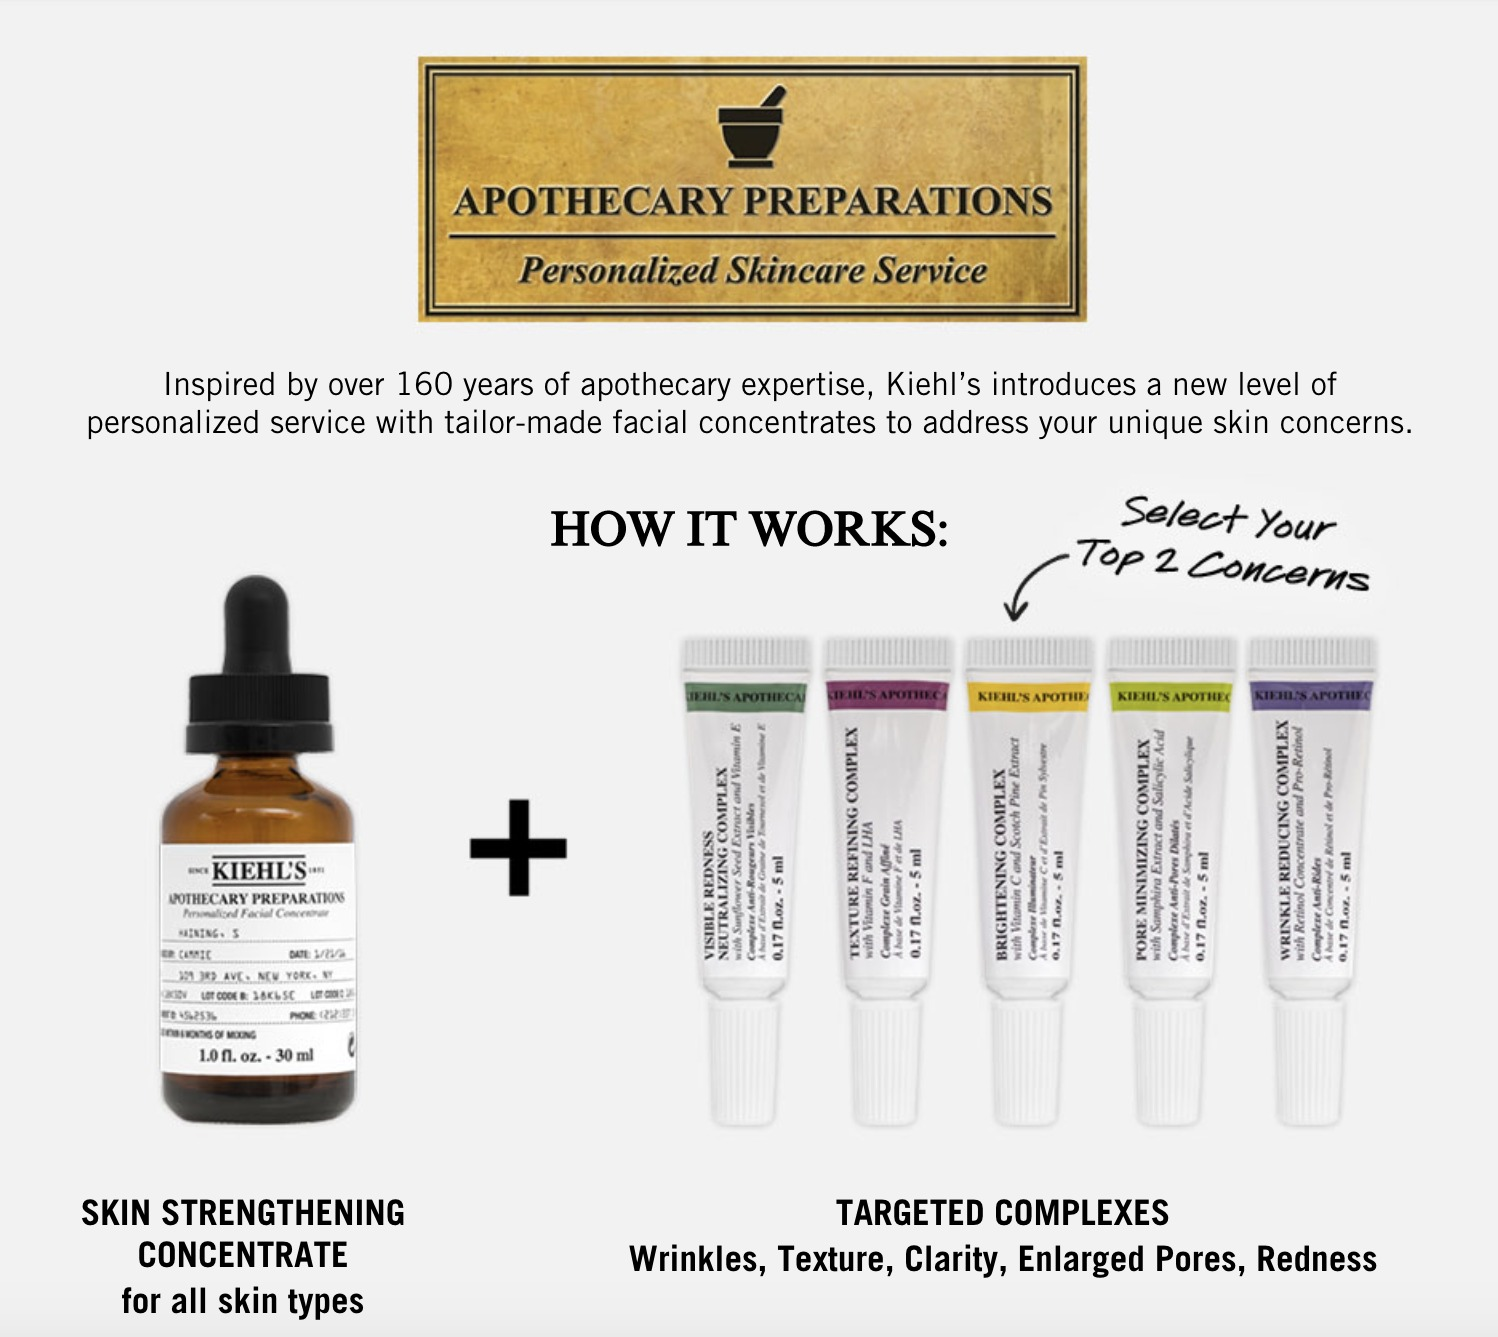 Kiehls Apothecary Preparations Review how it works